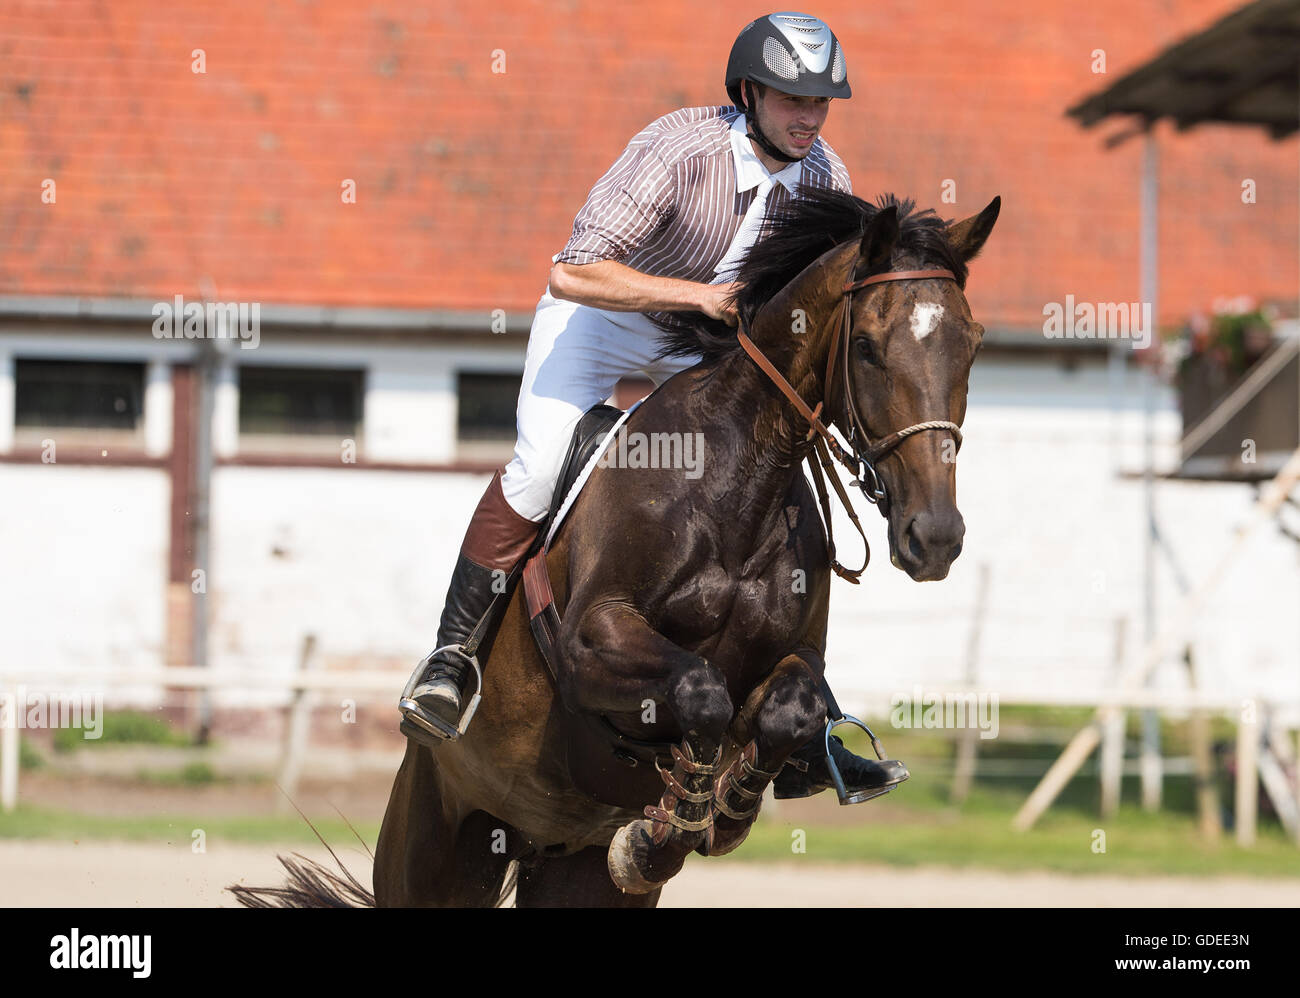 Young adult man riding a horse - Stock Image